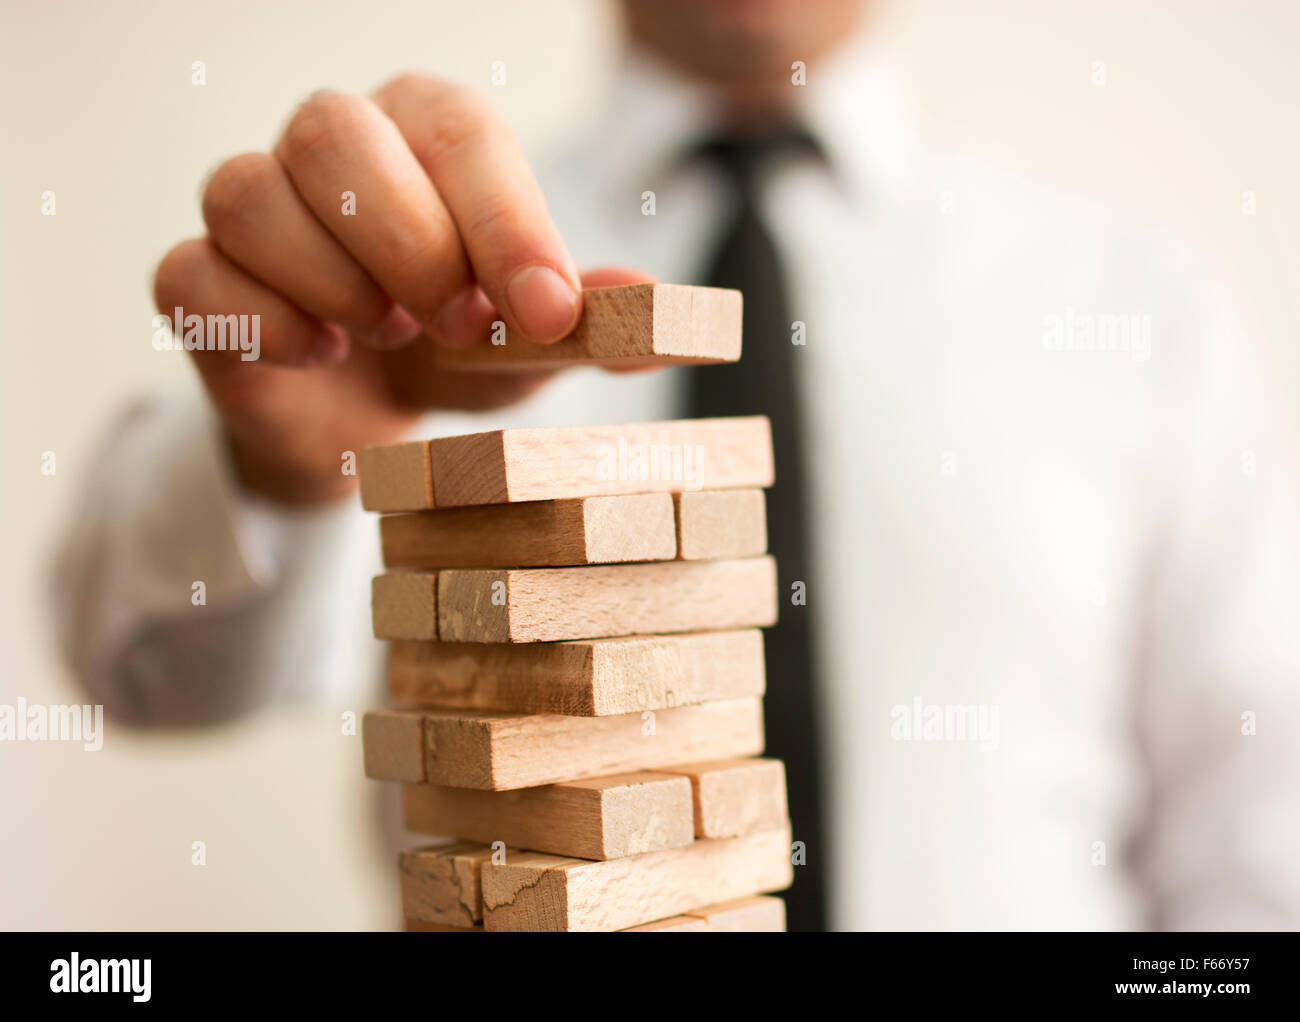 businessman builds a tower - Stock Image